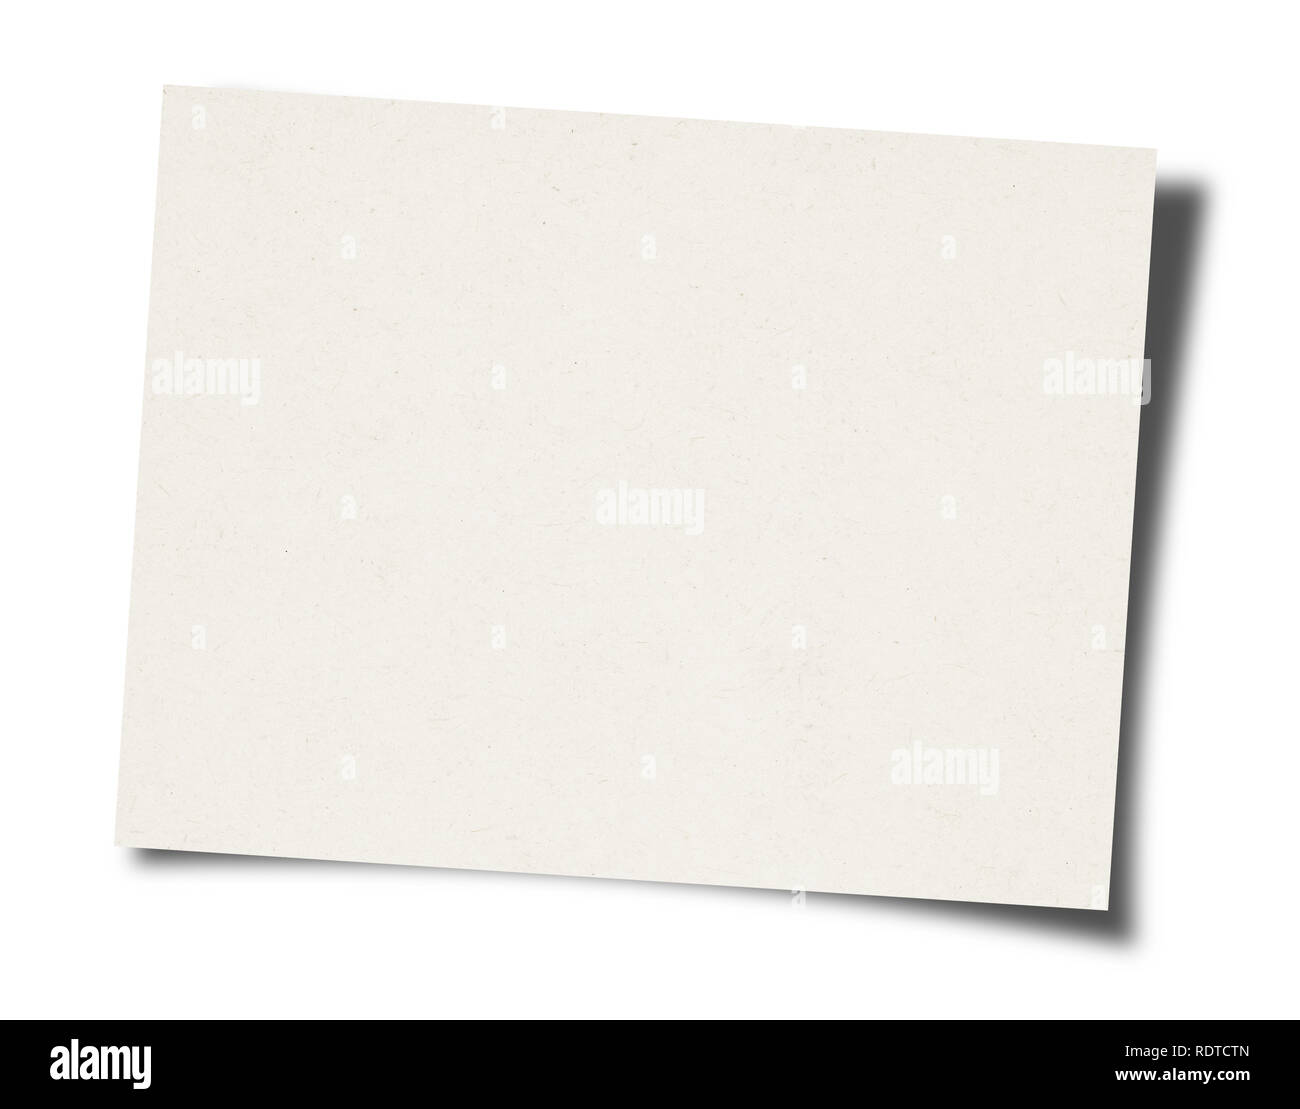 Blank sheet of paper background - Stock Image